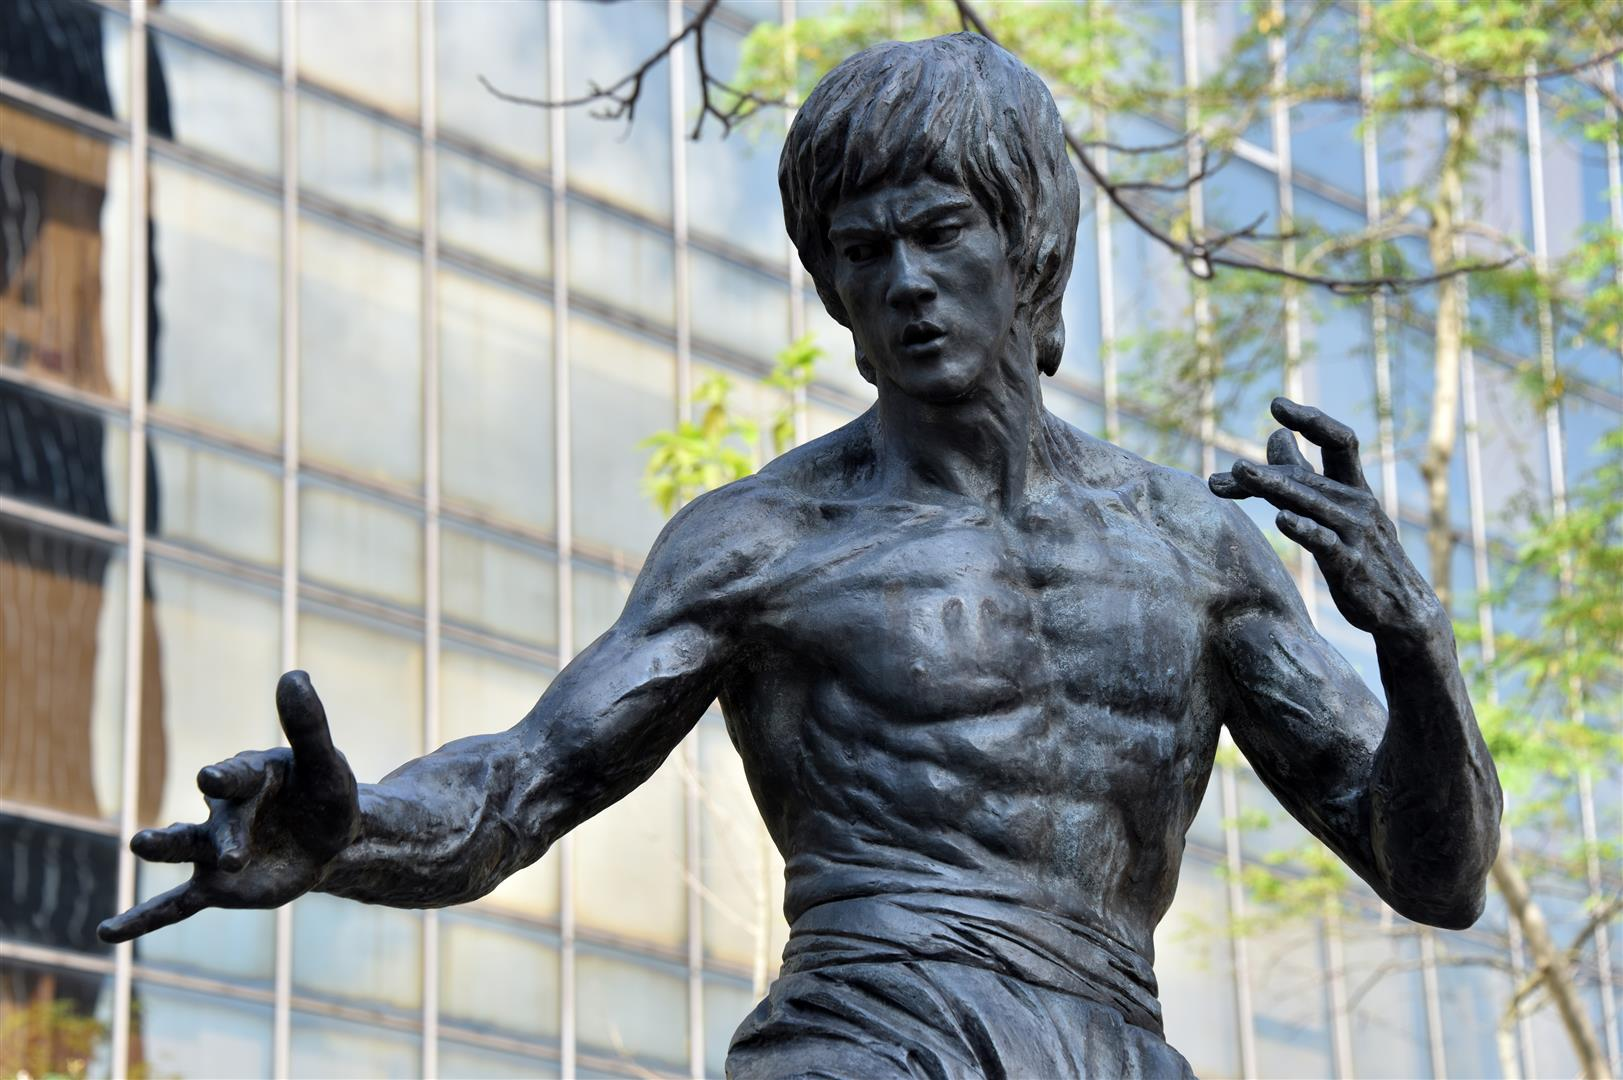 Hong Kong - Bruce Lee Statue (Large) - Copy